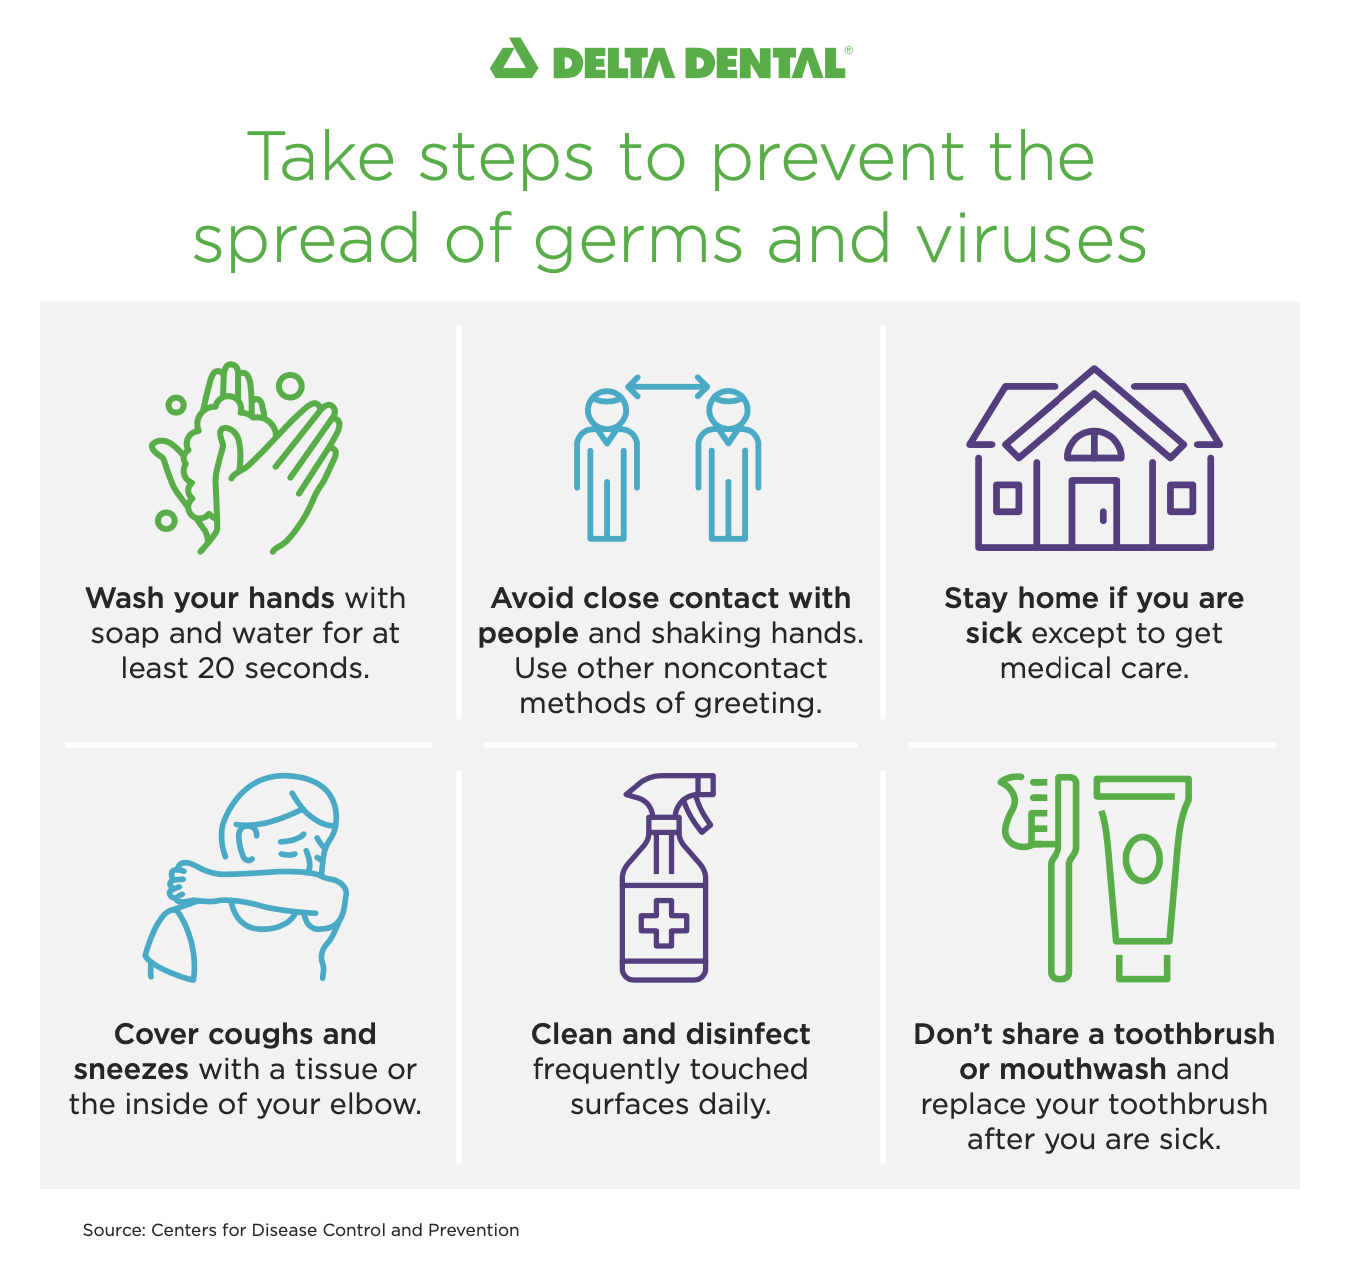 Take steps to prevent the spread of germs and viruses infographic